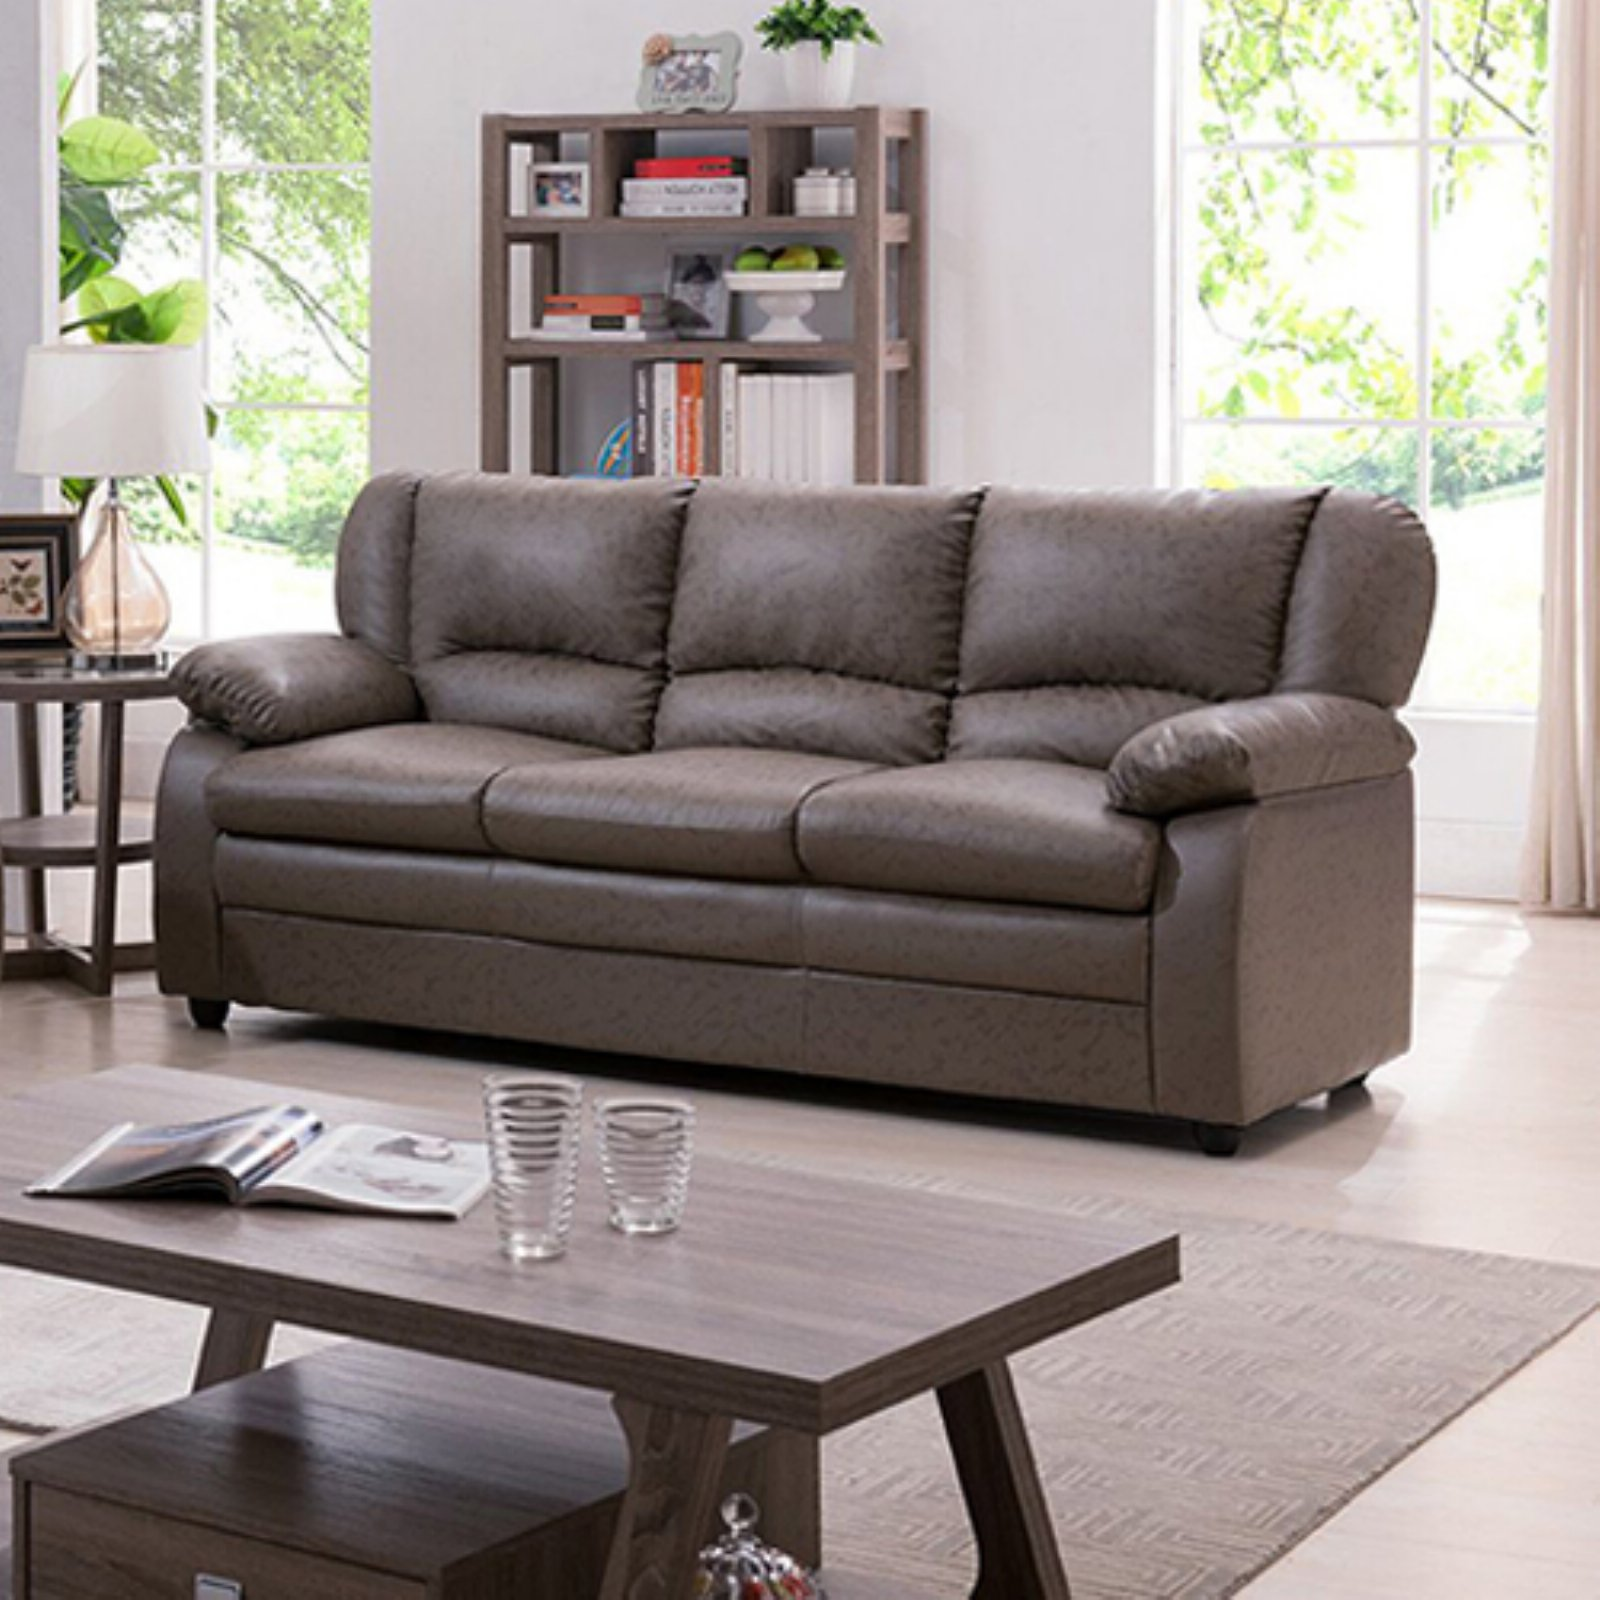 K & B Furniture Huntsville Sofa